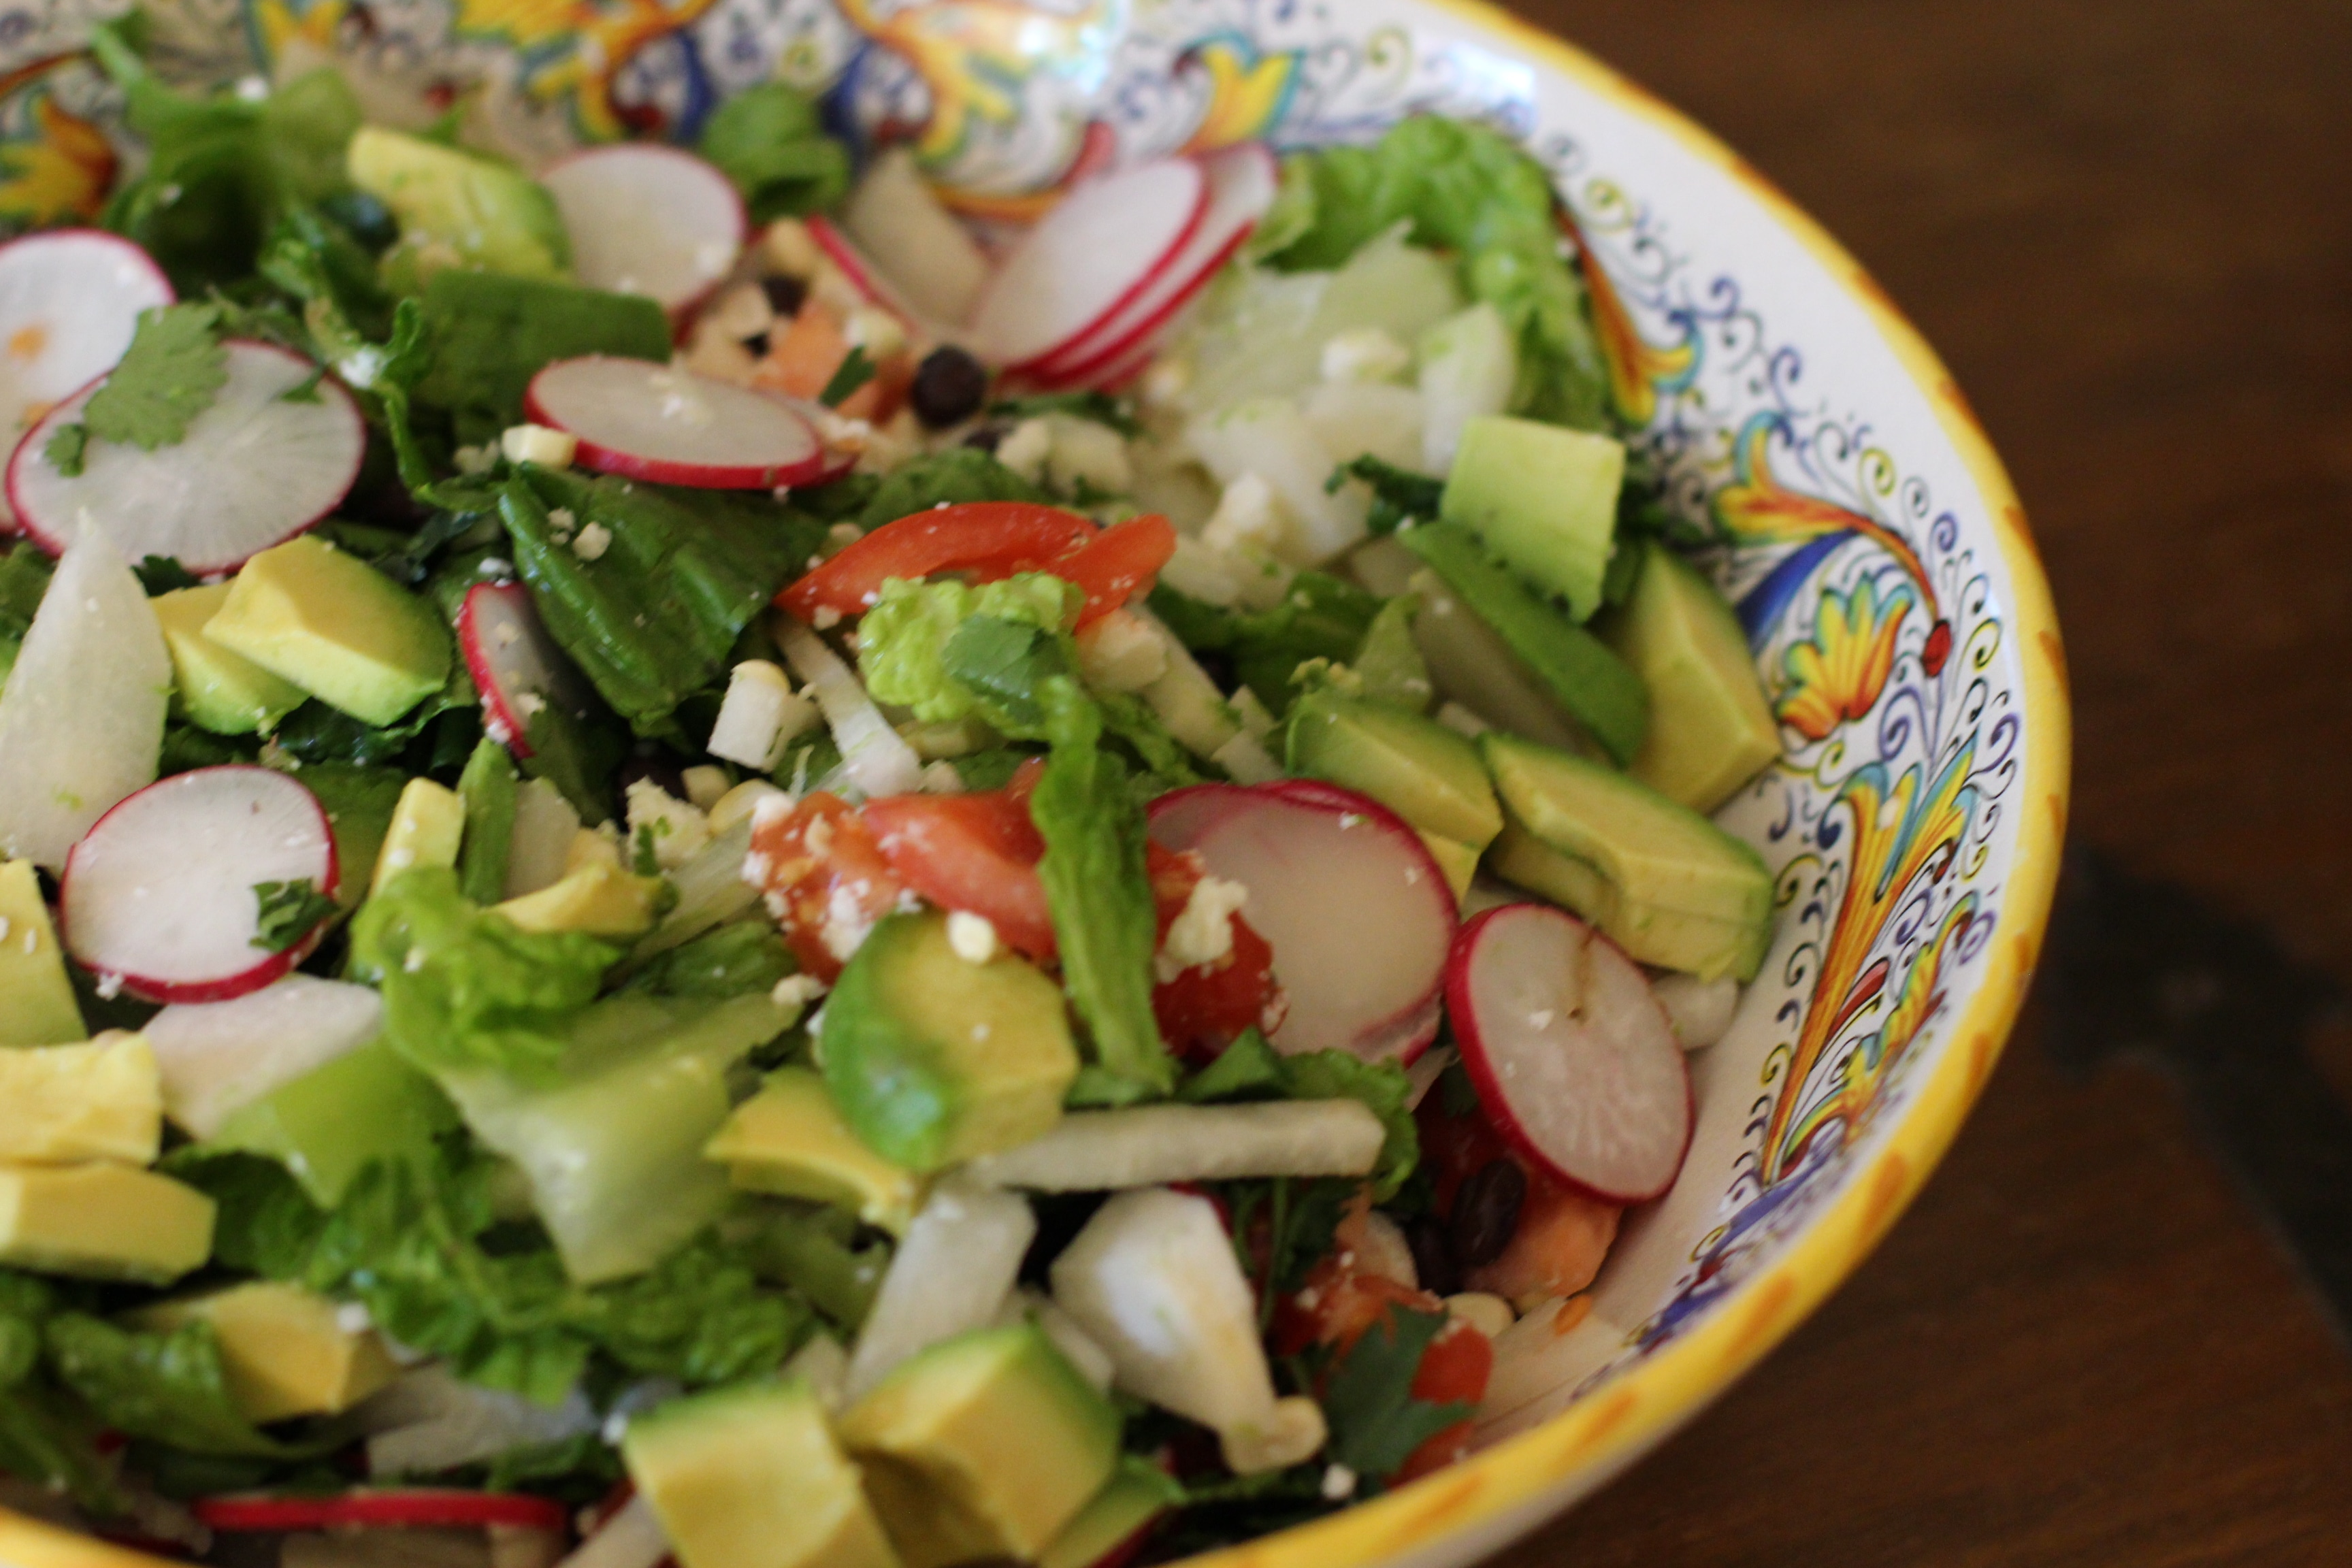 Black Bean, Radish, Jicama and Avocado Salad